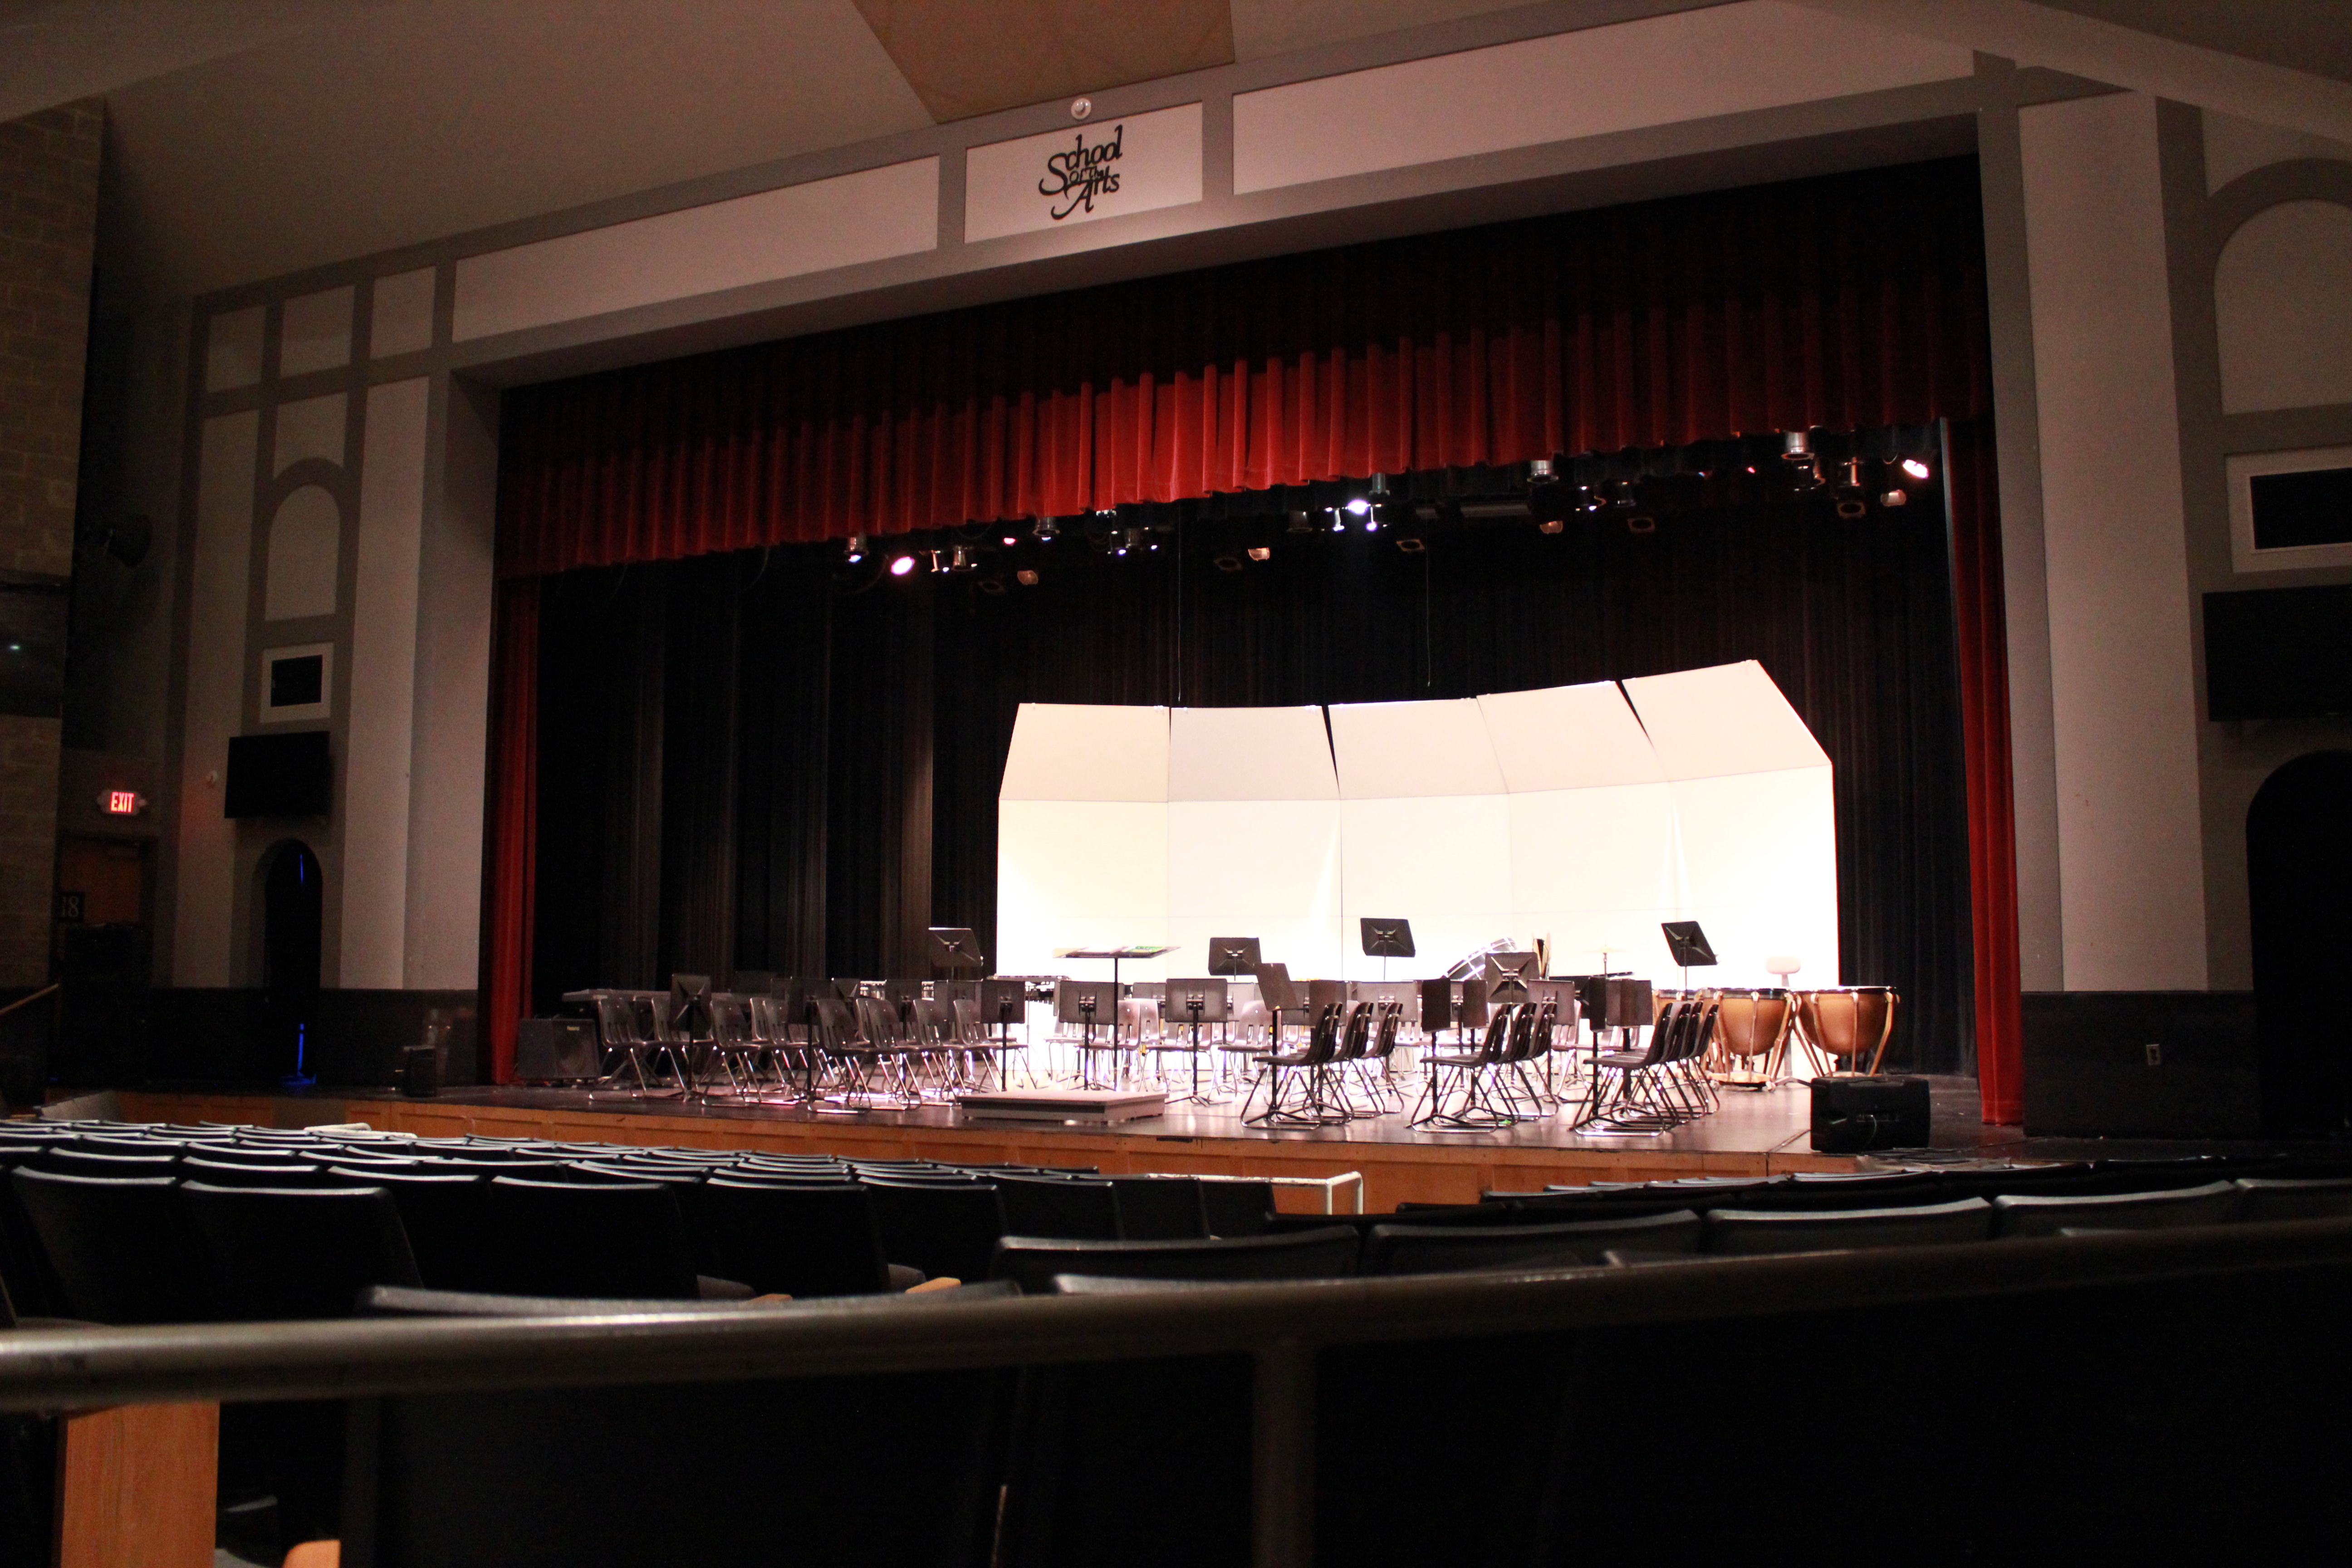 School of the Arts: Allen Main Stage Theatre